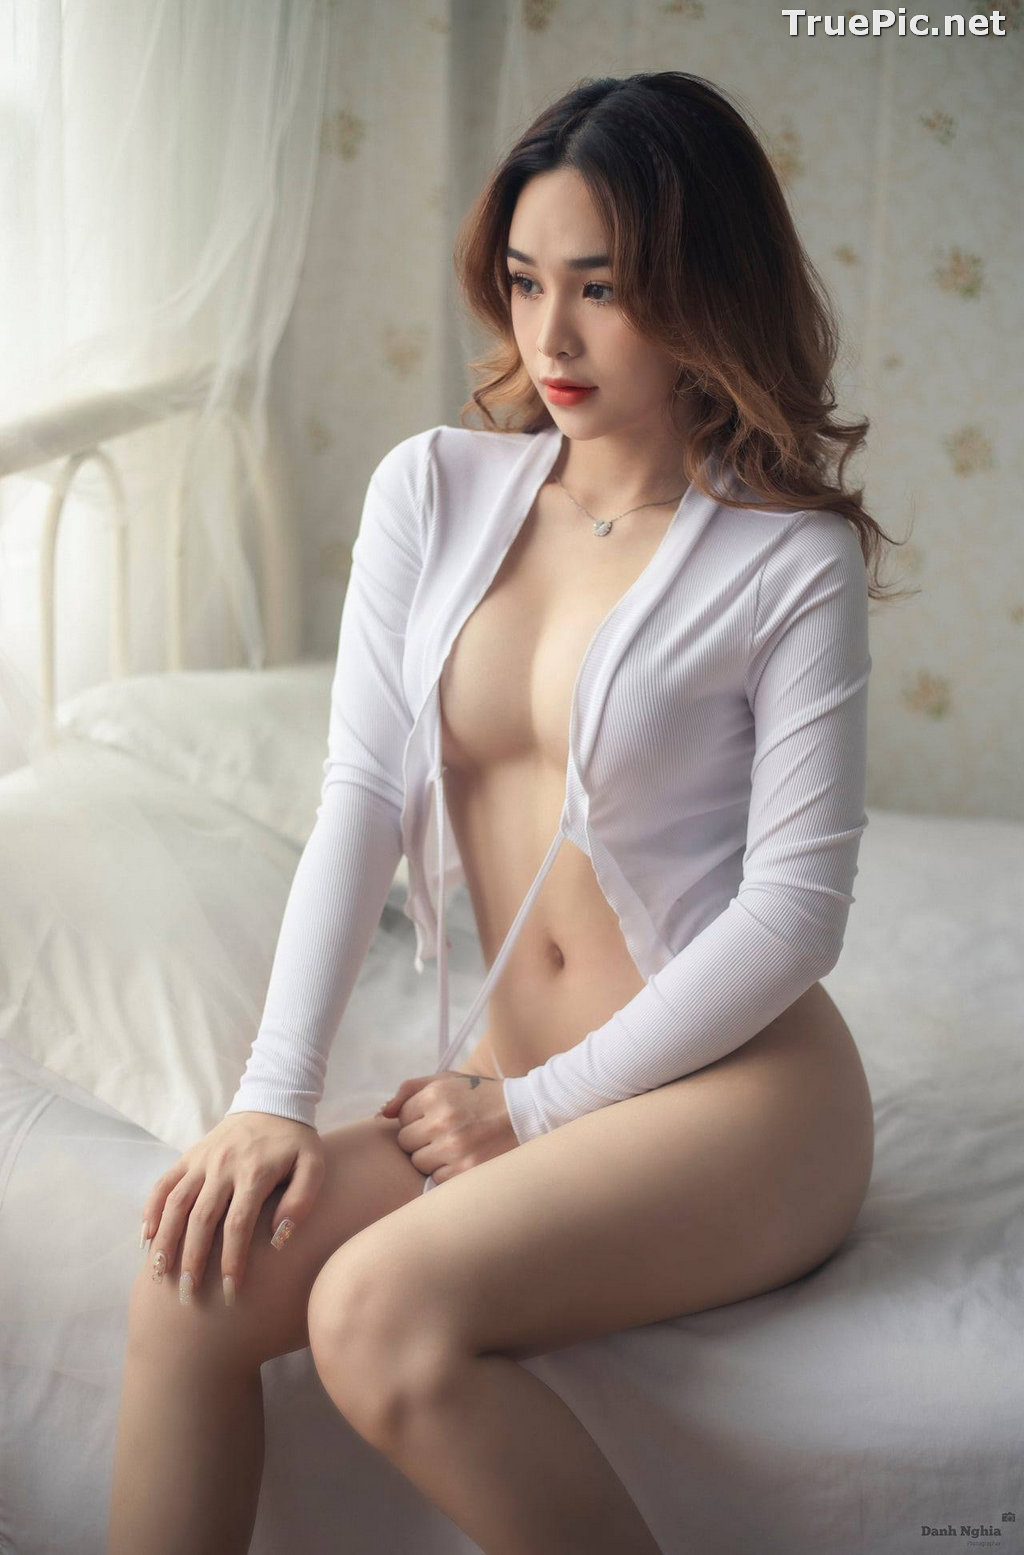 Image Vietnamese Sexy Model - Beautiful Body Curves - TruePic.net - Picture-7